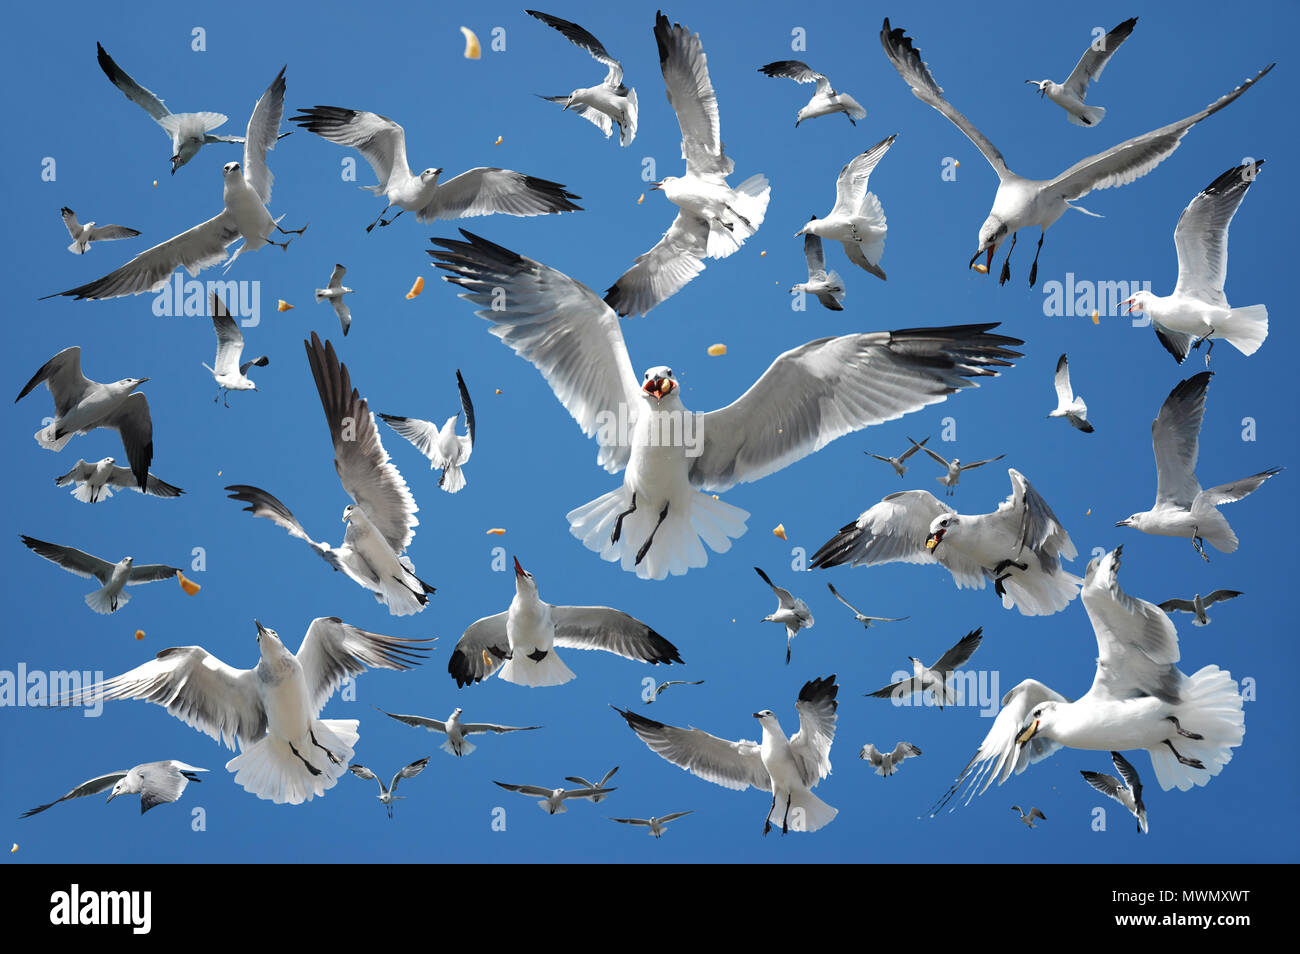 Feeding a flock of seagulls in the air. Stock Photo